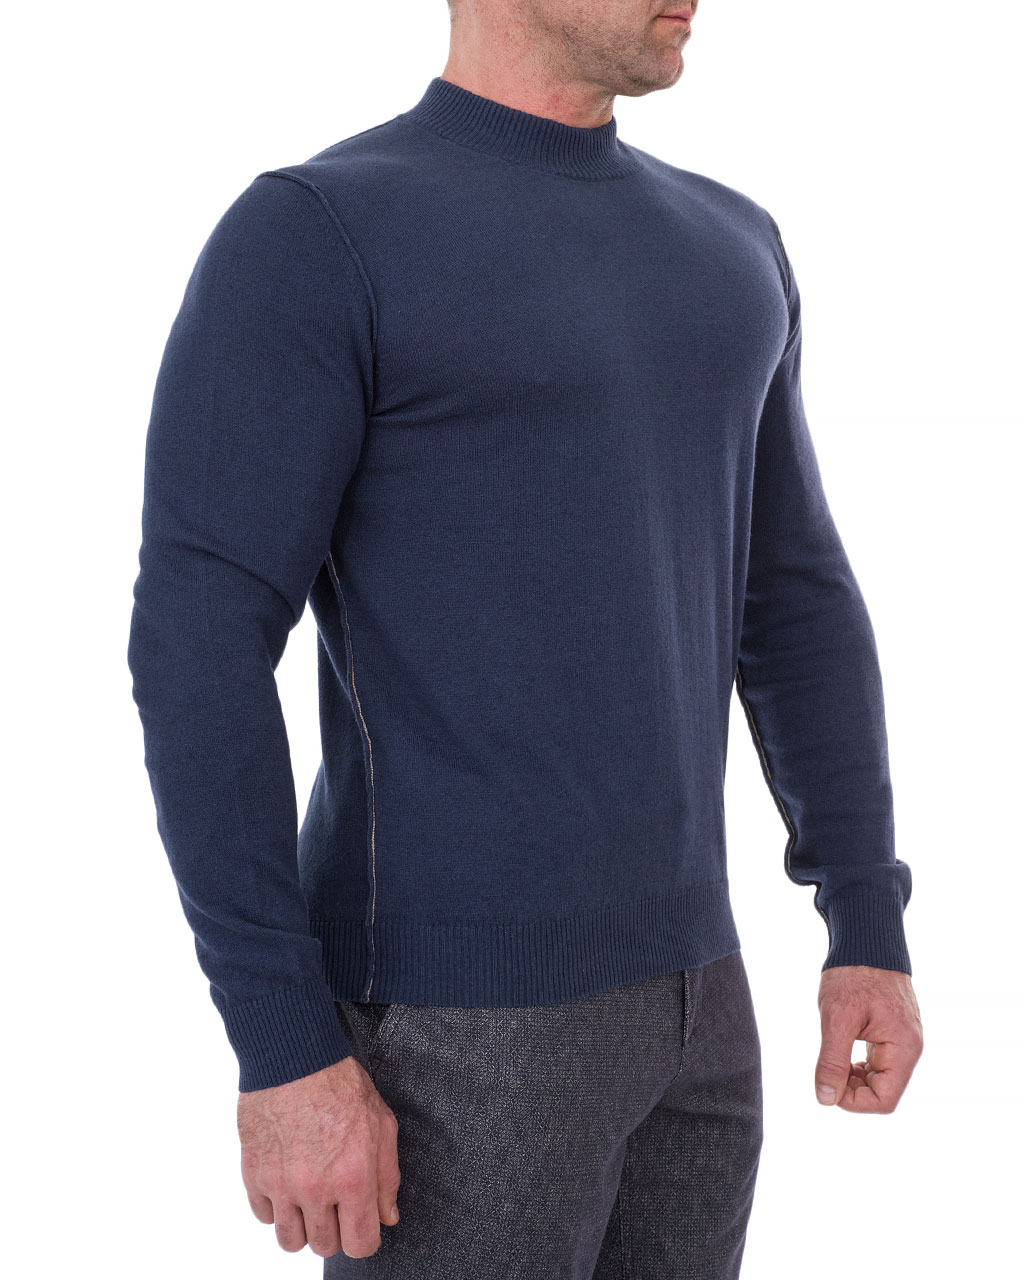 Men's jumper 75217-680-487625/7-81    (3)